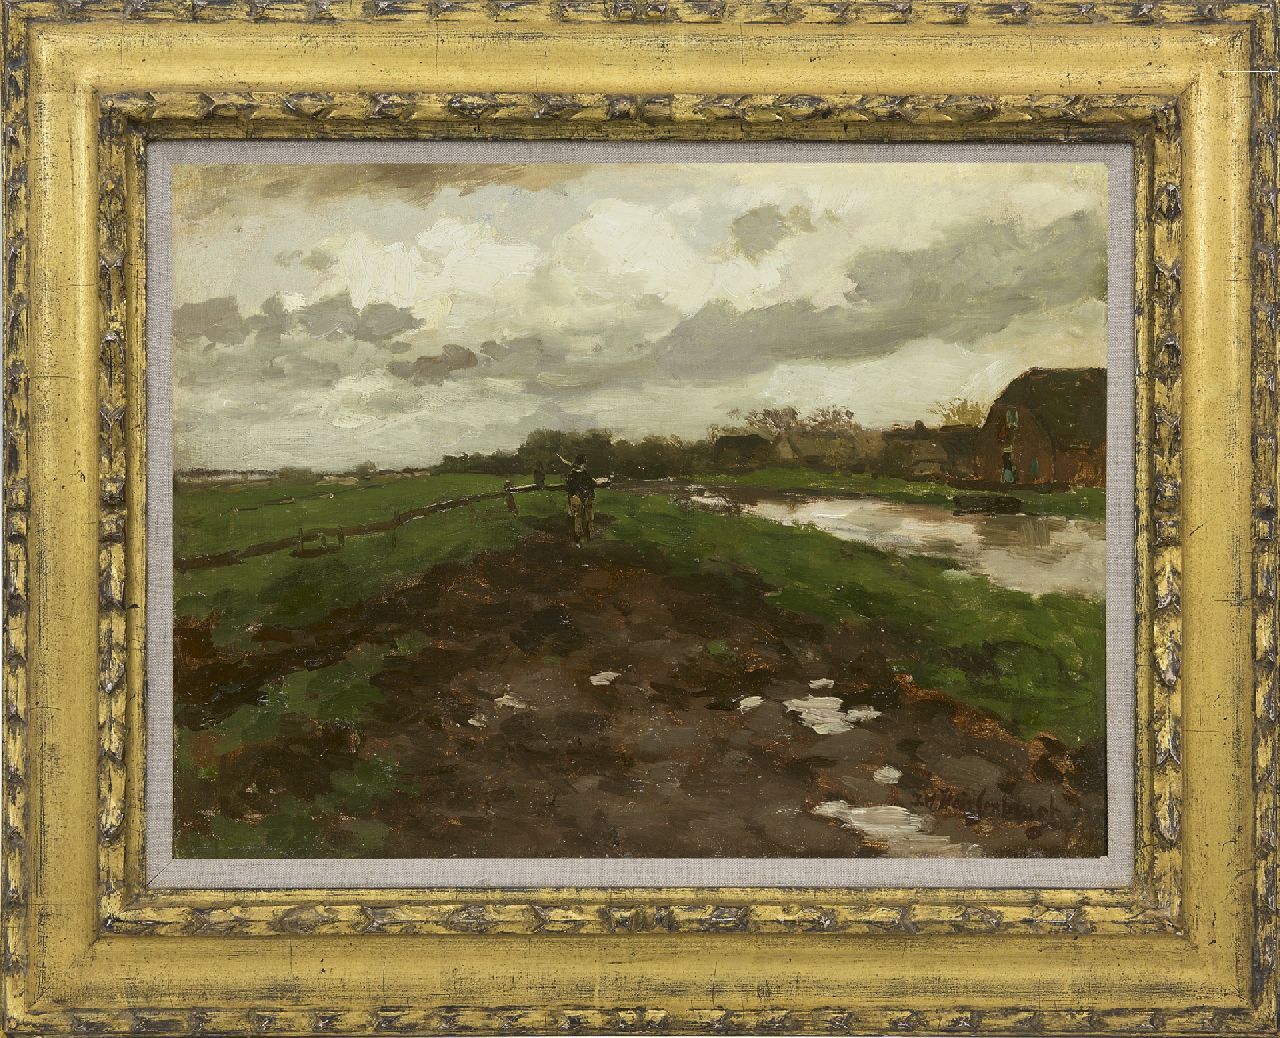 Weissenbruch H.J.  | Hendrik Johannes 'J.H.' Weissenbruch | Paintings offered for sale | Homewards after the rain, oil on canvas laid down on panel 32.9 x 44.1 cm, signed l.r.